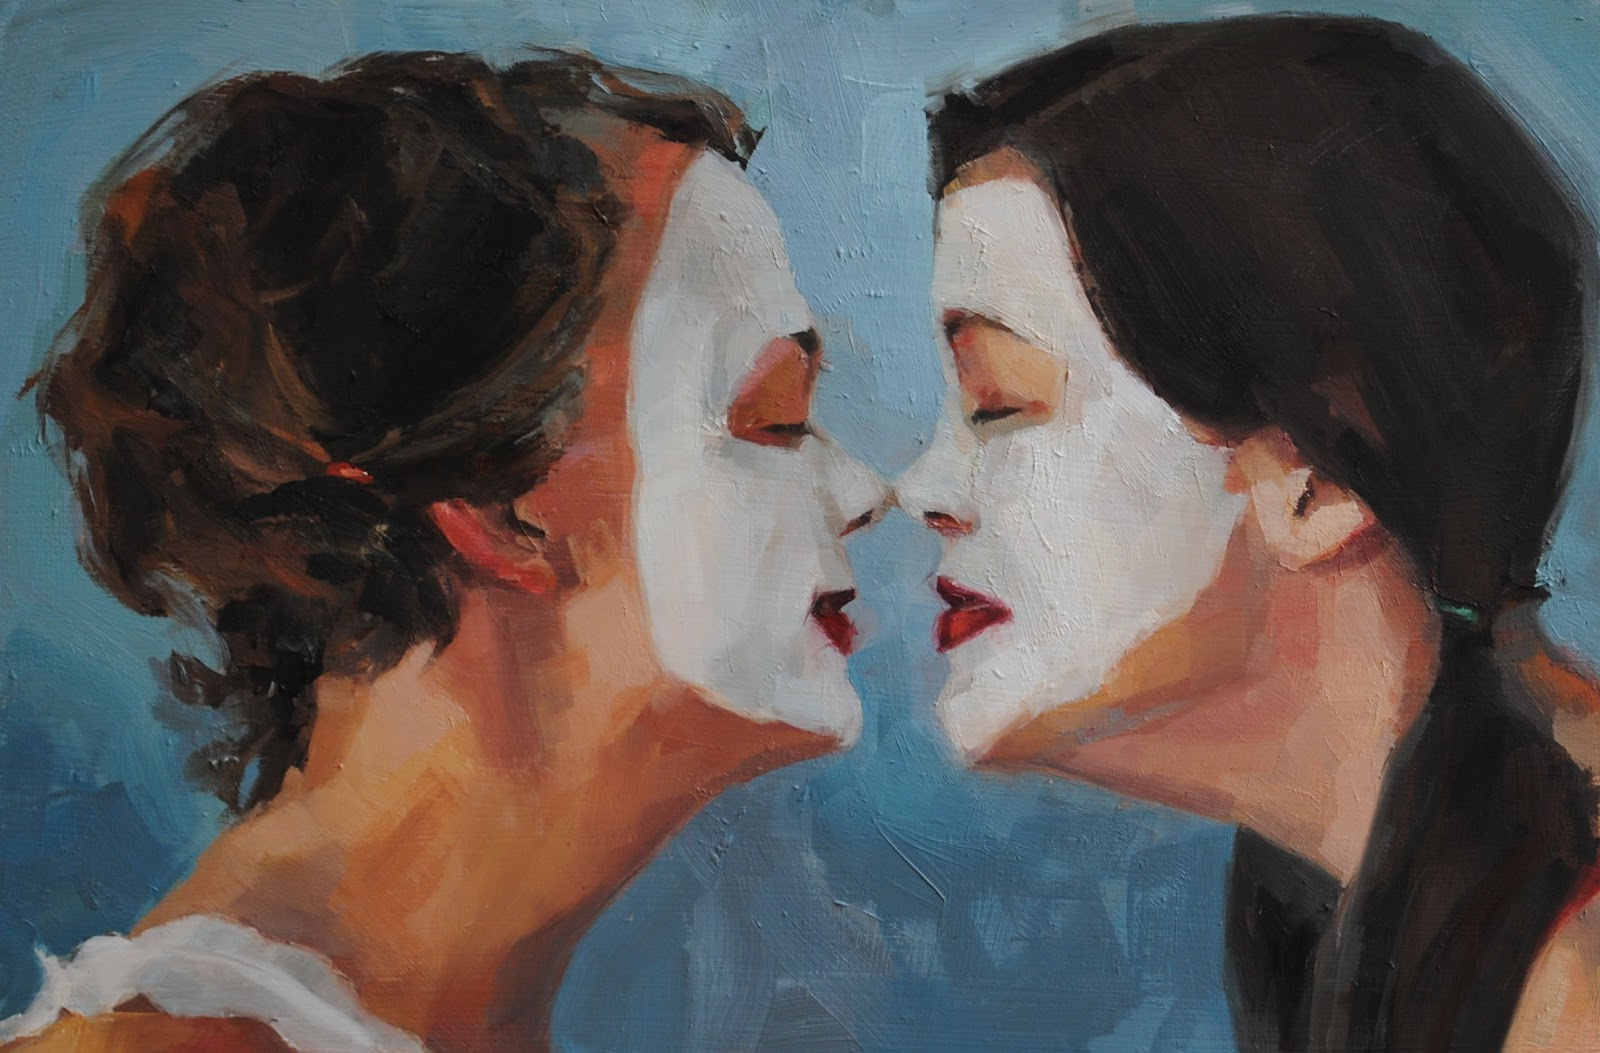 Jean Townsend's Daily Painting: Nose Kiss